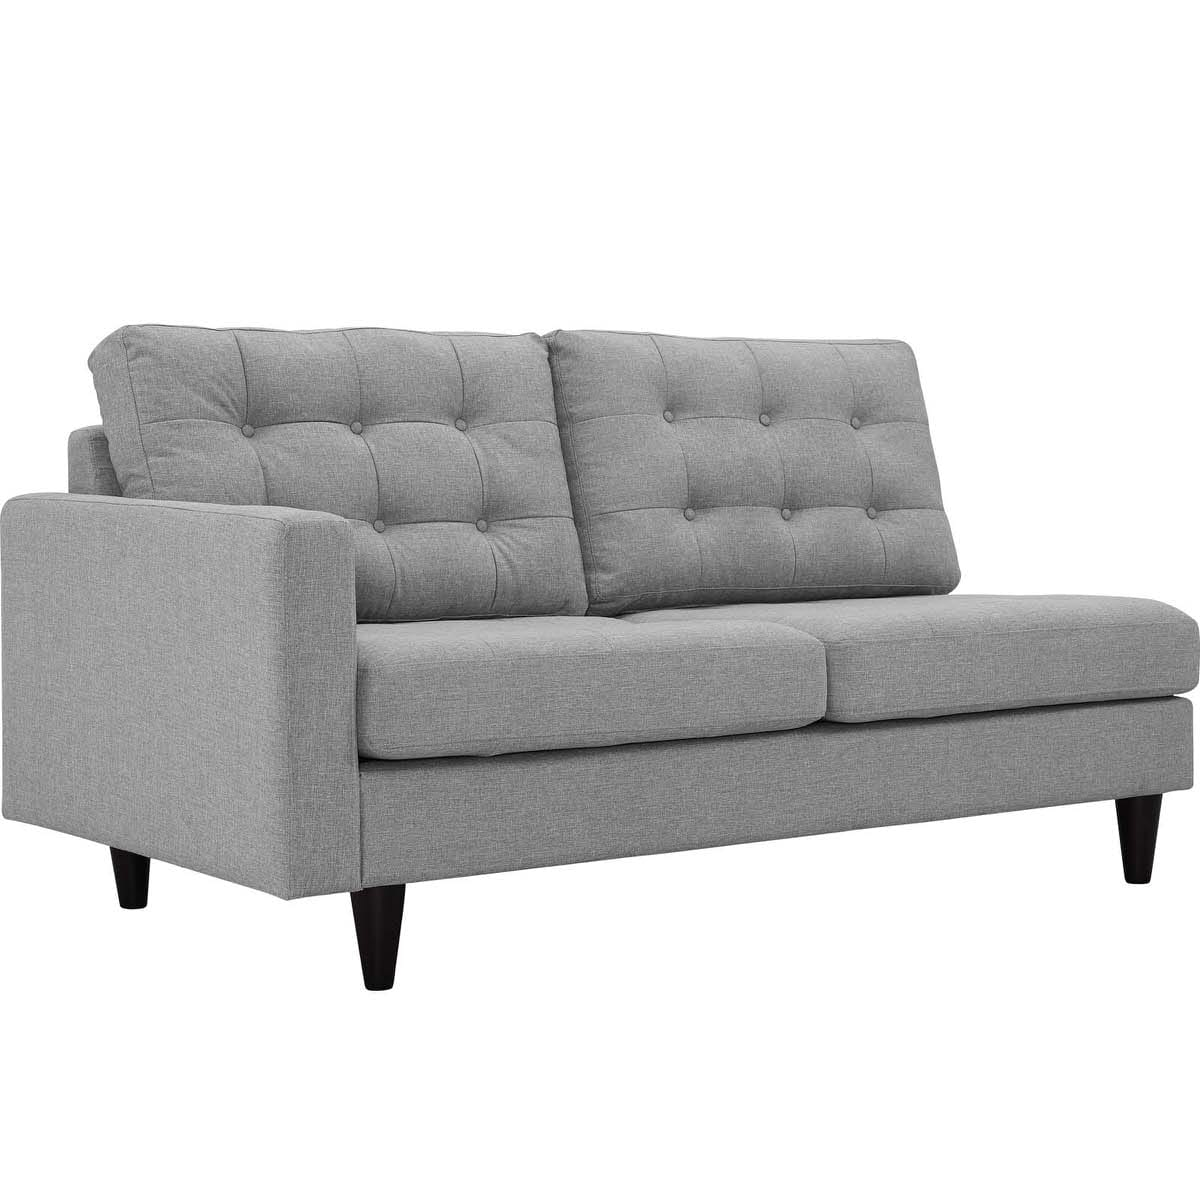 Fabulous Empress Left Facing Upholstered Fabric Loveseat Light Gray Gmtry Best Dining Table And Chair Ideas Images Gmtryco